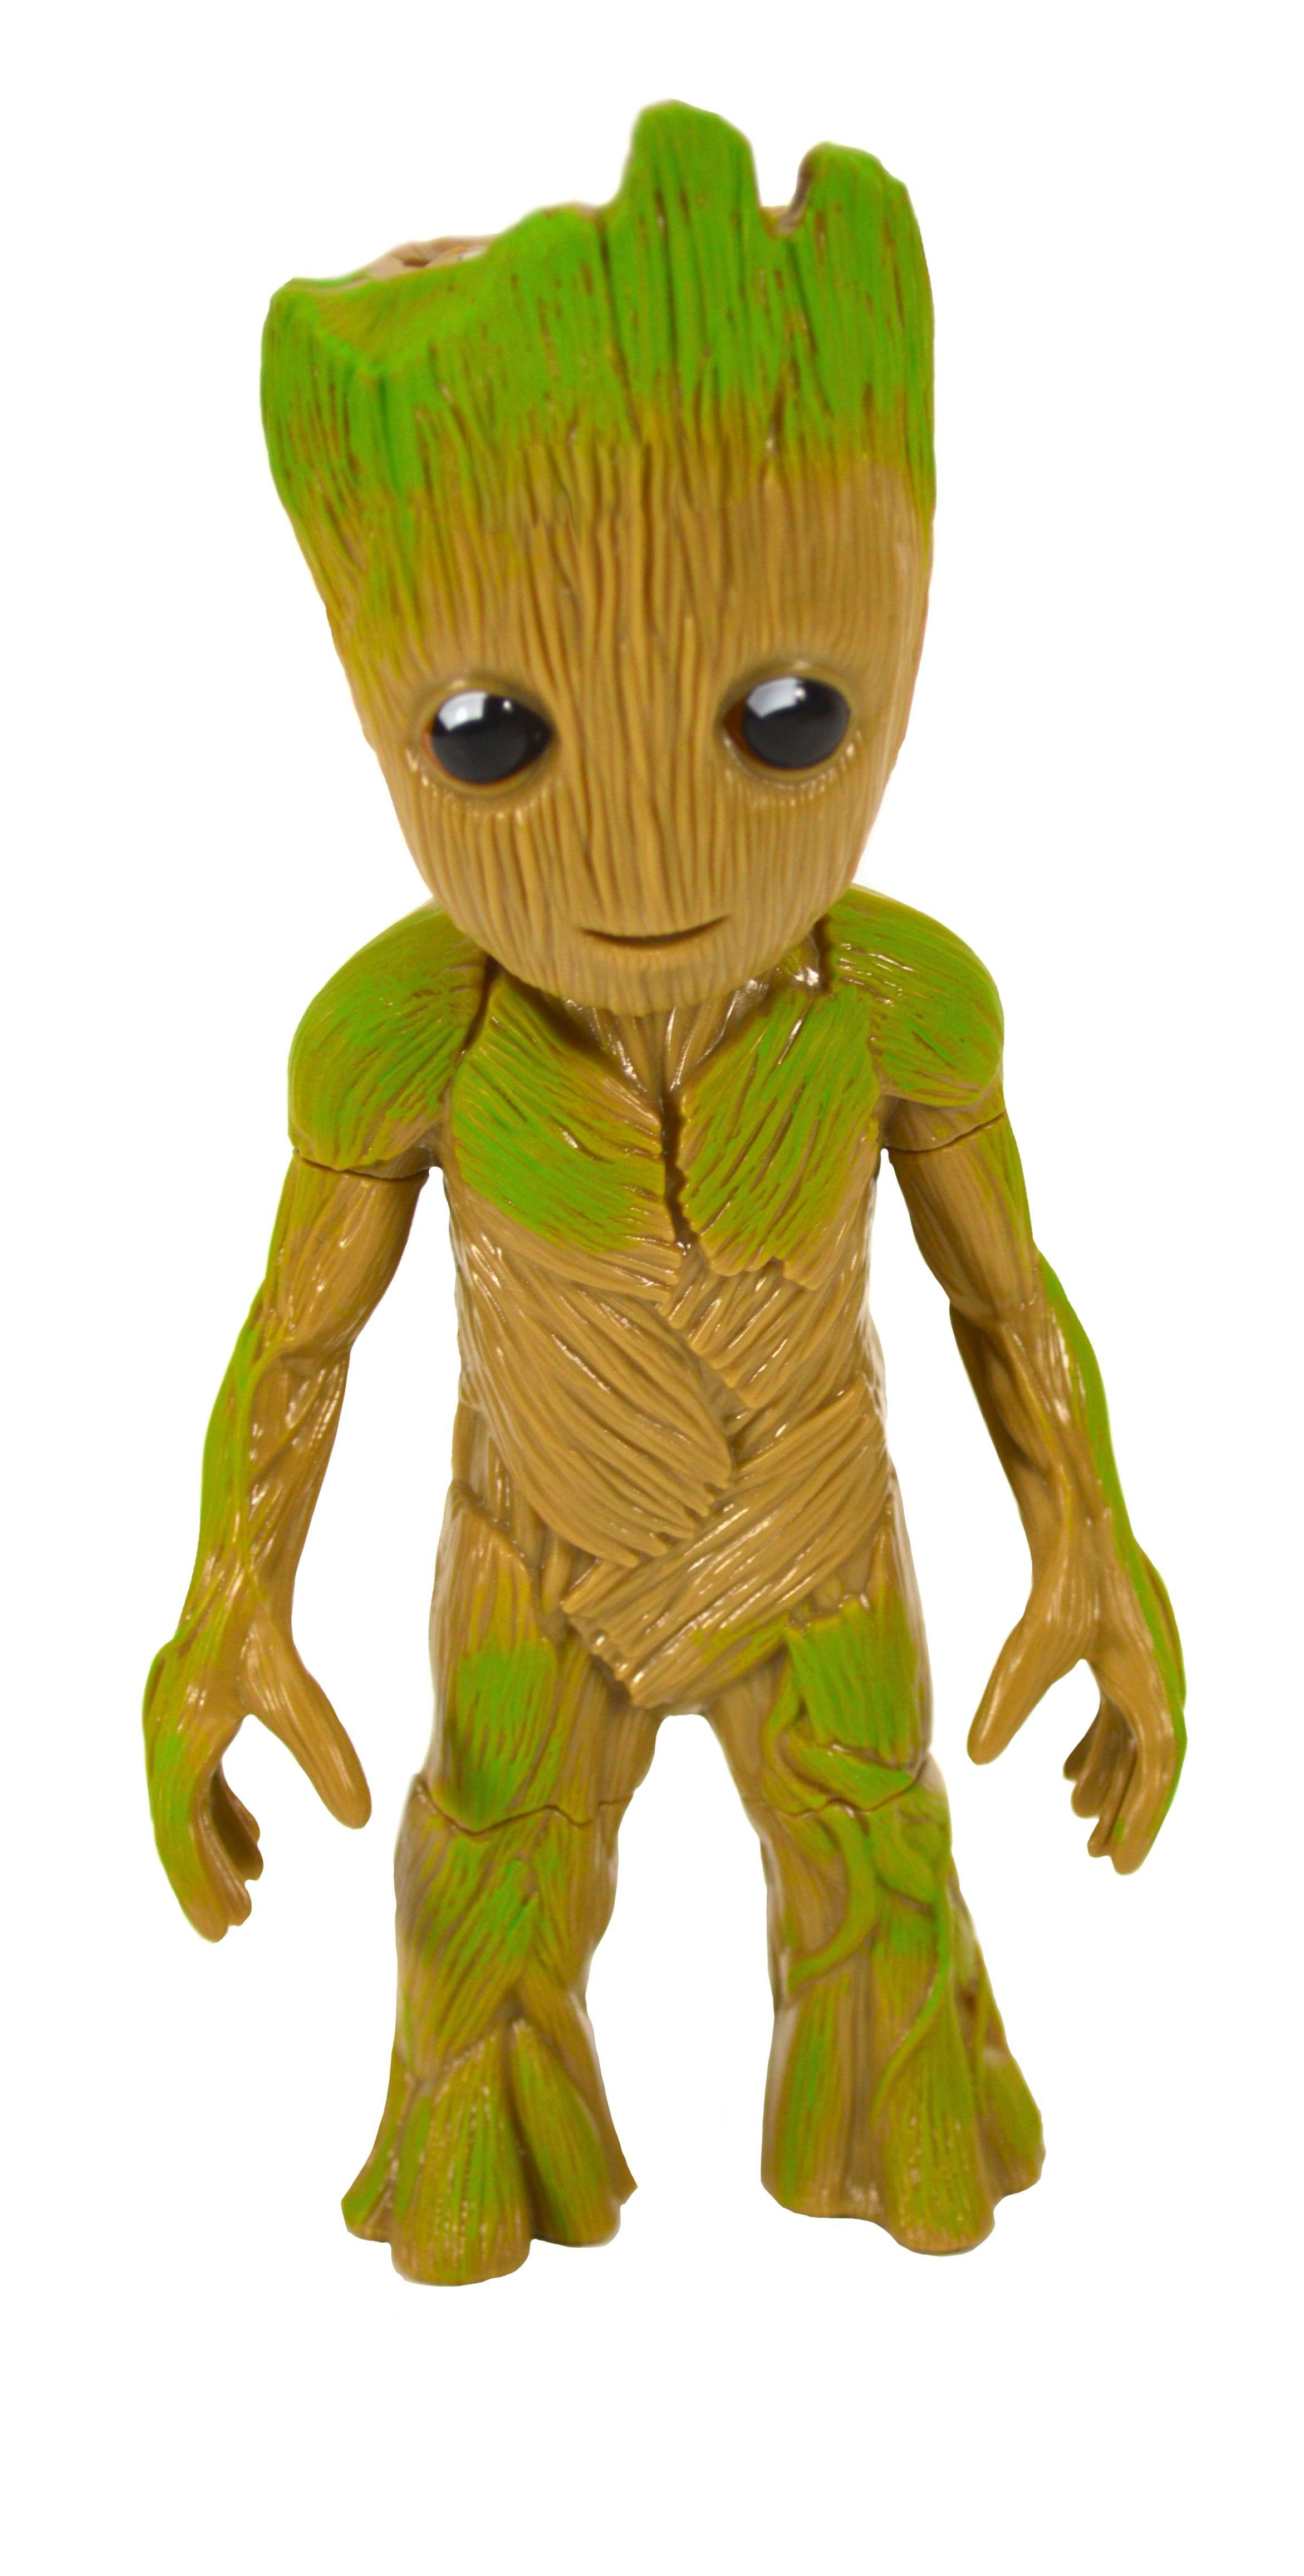 BOP IT! GUARDIANS OF THE GALAXY GROOT Edition Game (1)